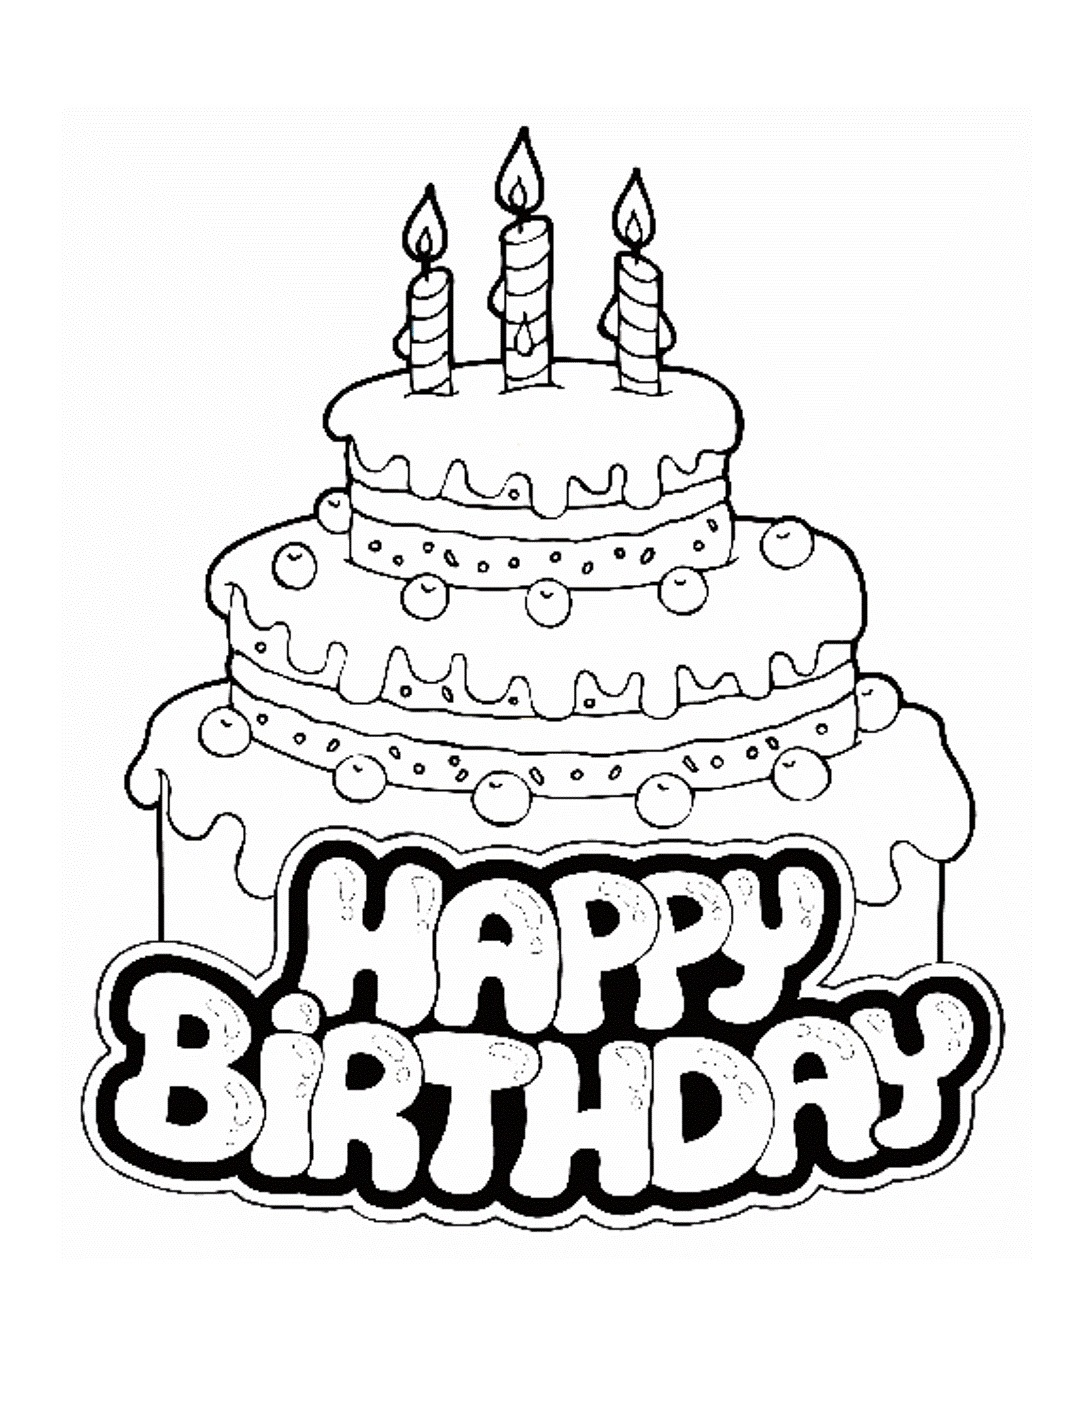 photo relating to Birthday Cake Printable referred to as Cost-free Printable Birthday Cake Coloring Webpages For Children